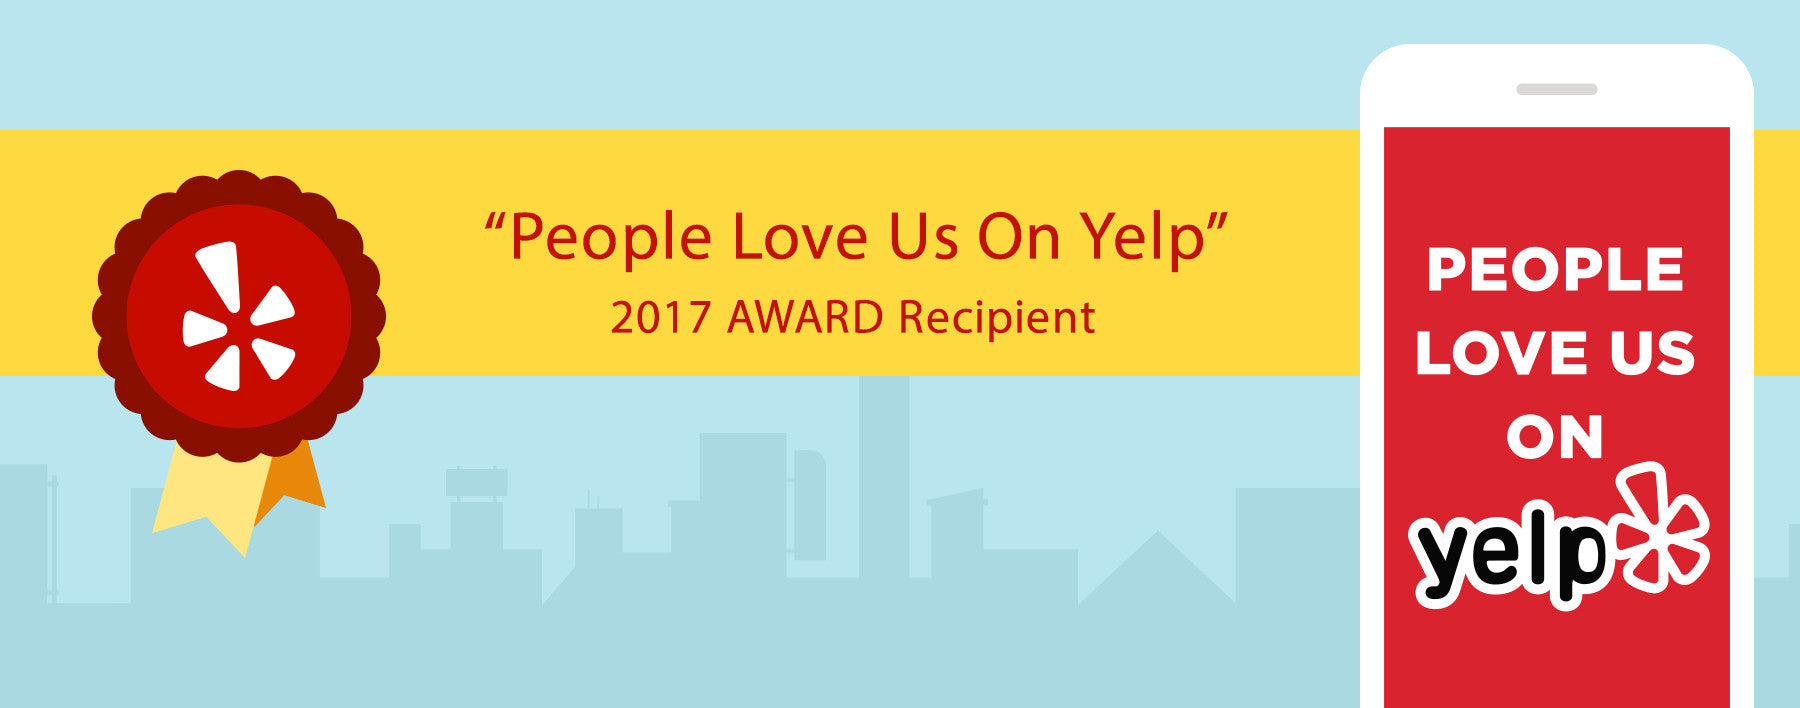 People Love us on Yelp 2017 Award Recipient WatchGuyNYC Customer Review